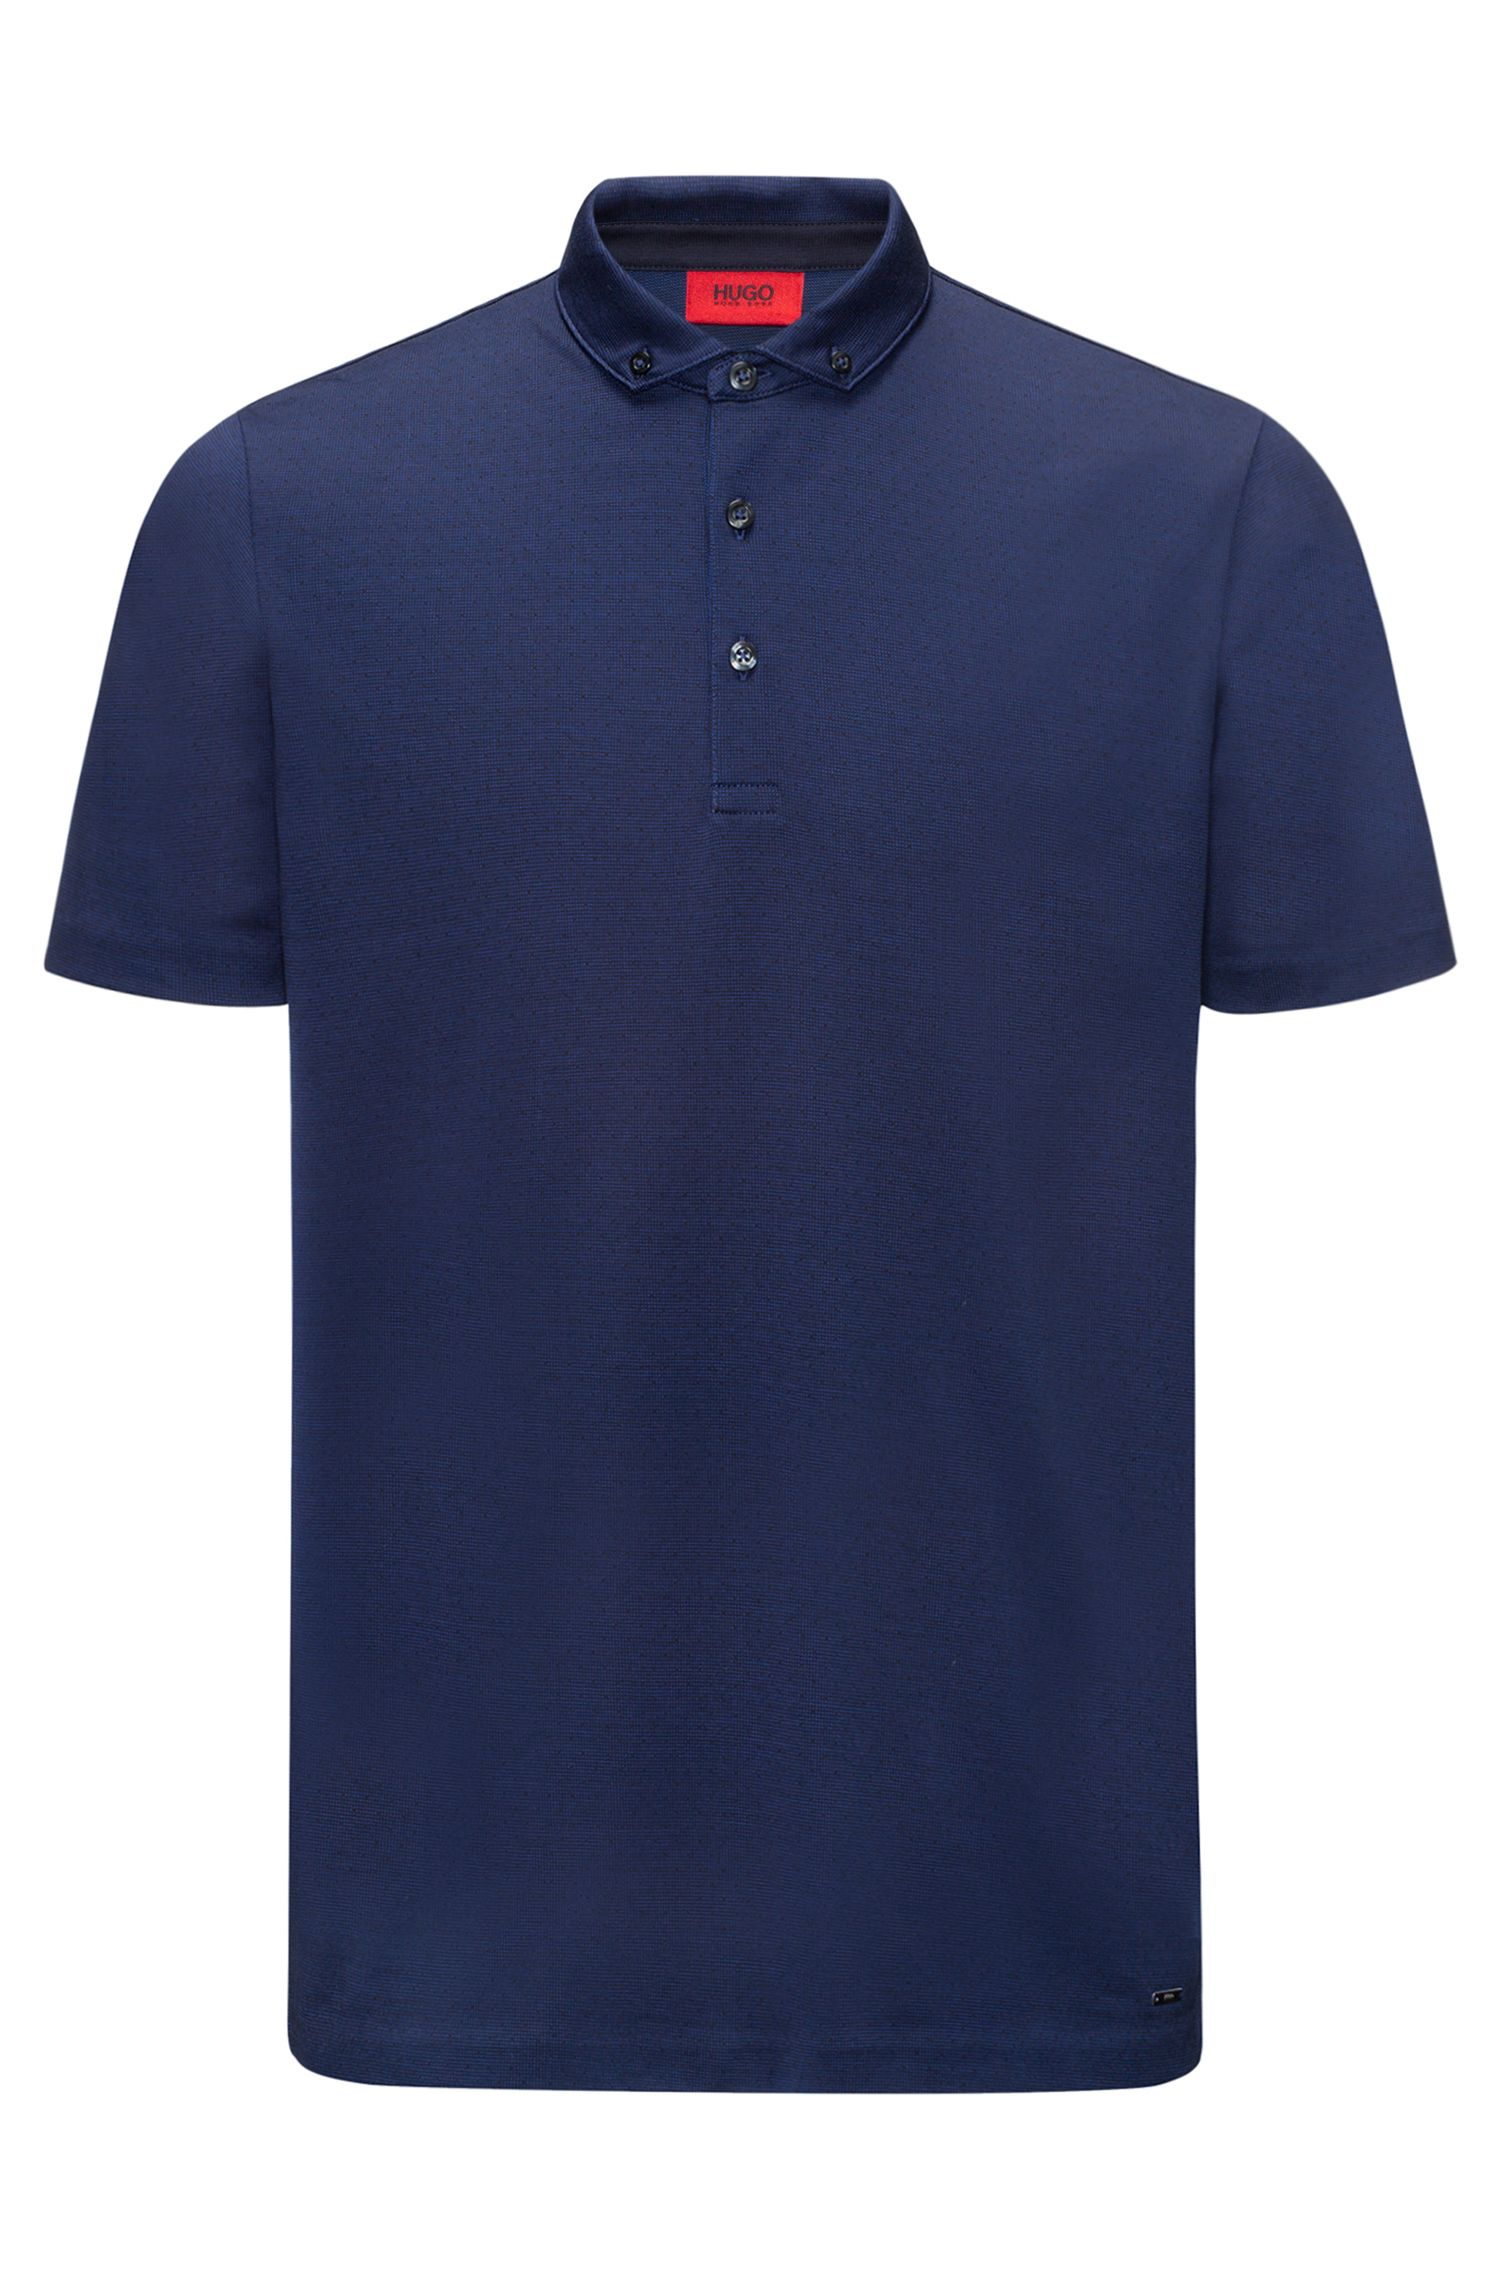 Mercerised cotton jacquard polo shirt in a regular fit